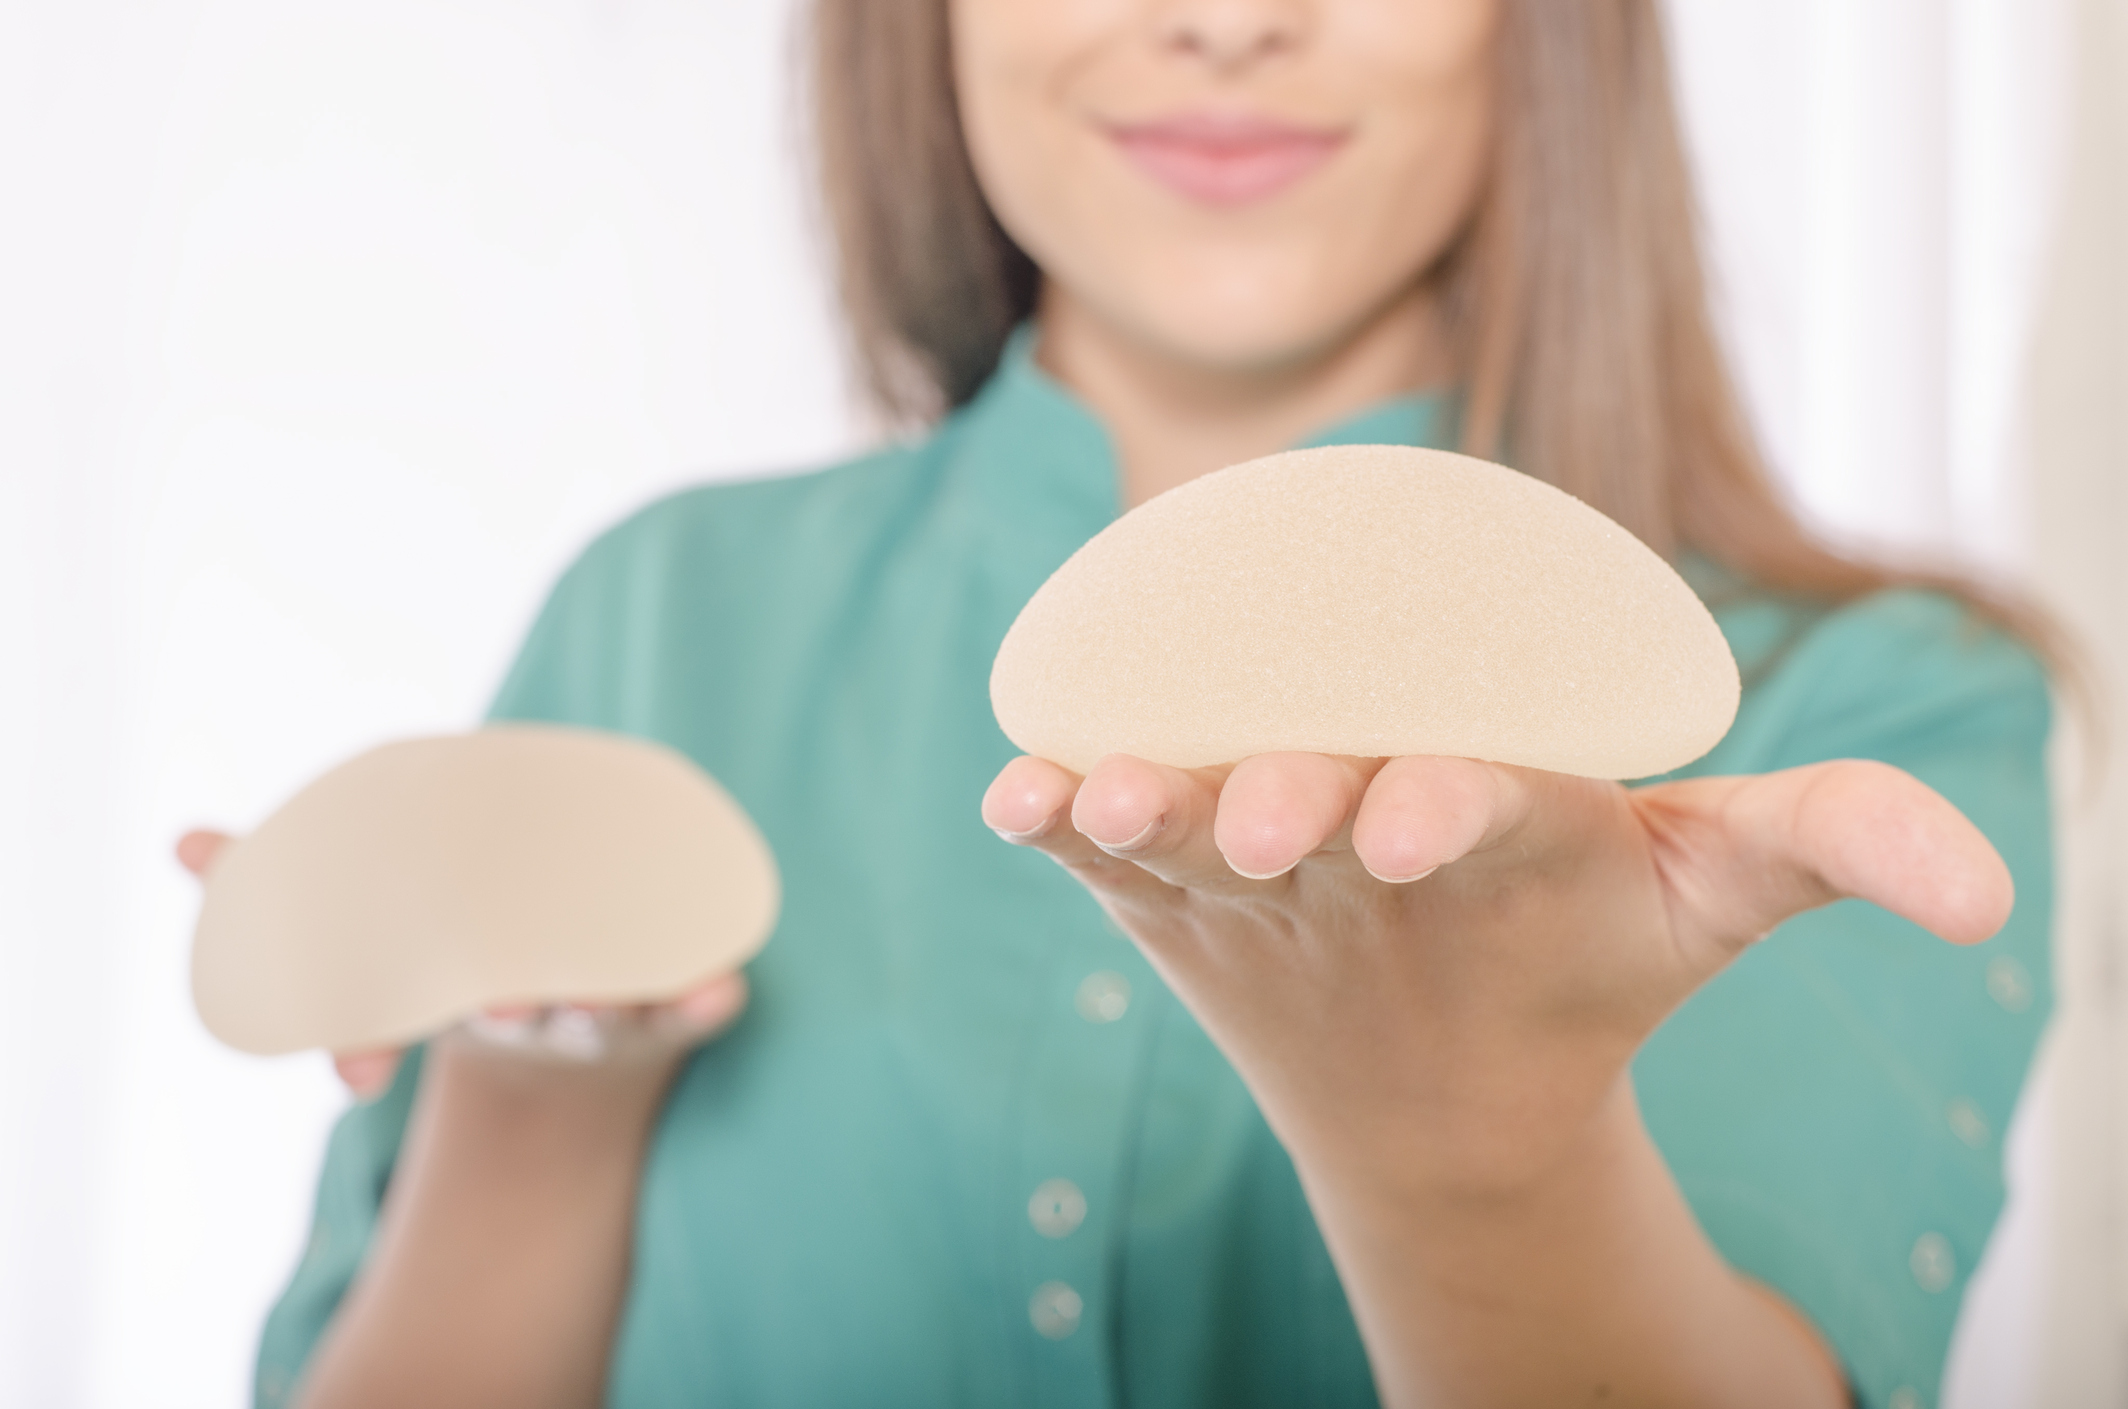 Silicone Breast Implants Back In The News - Dangerous ...